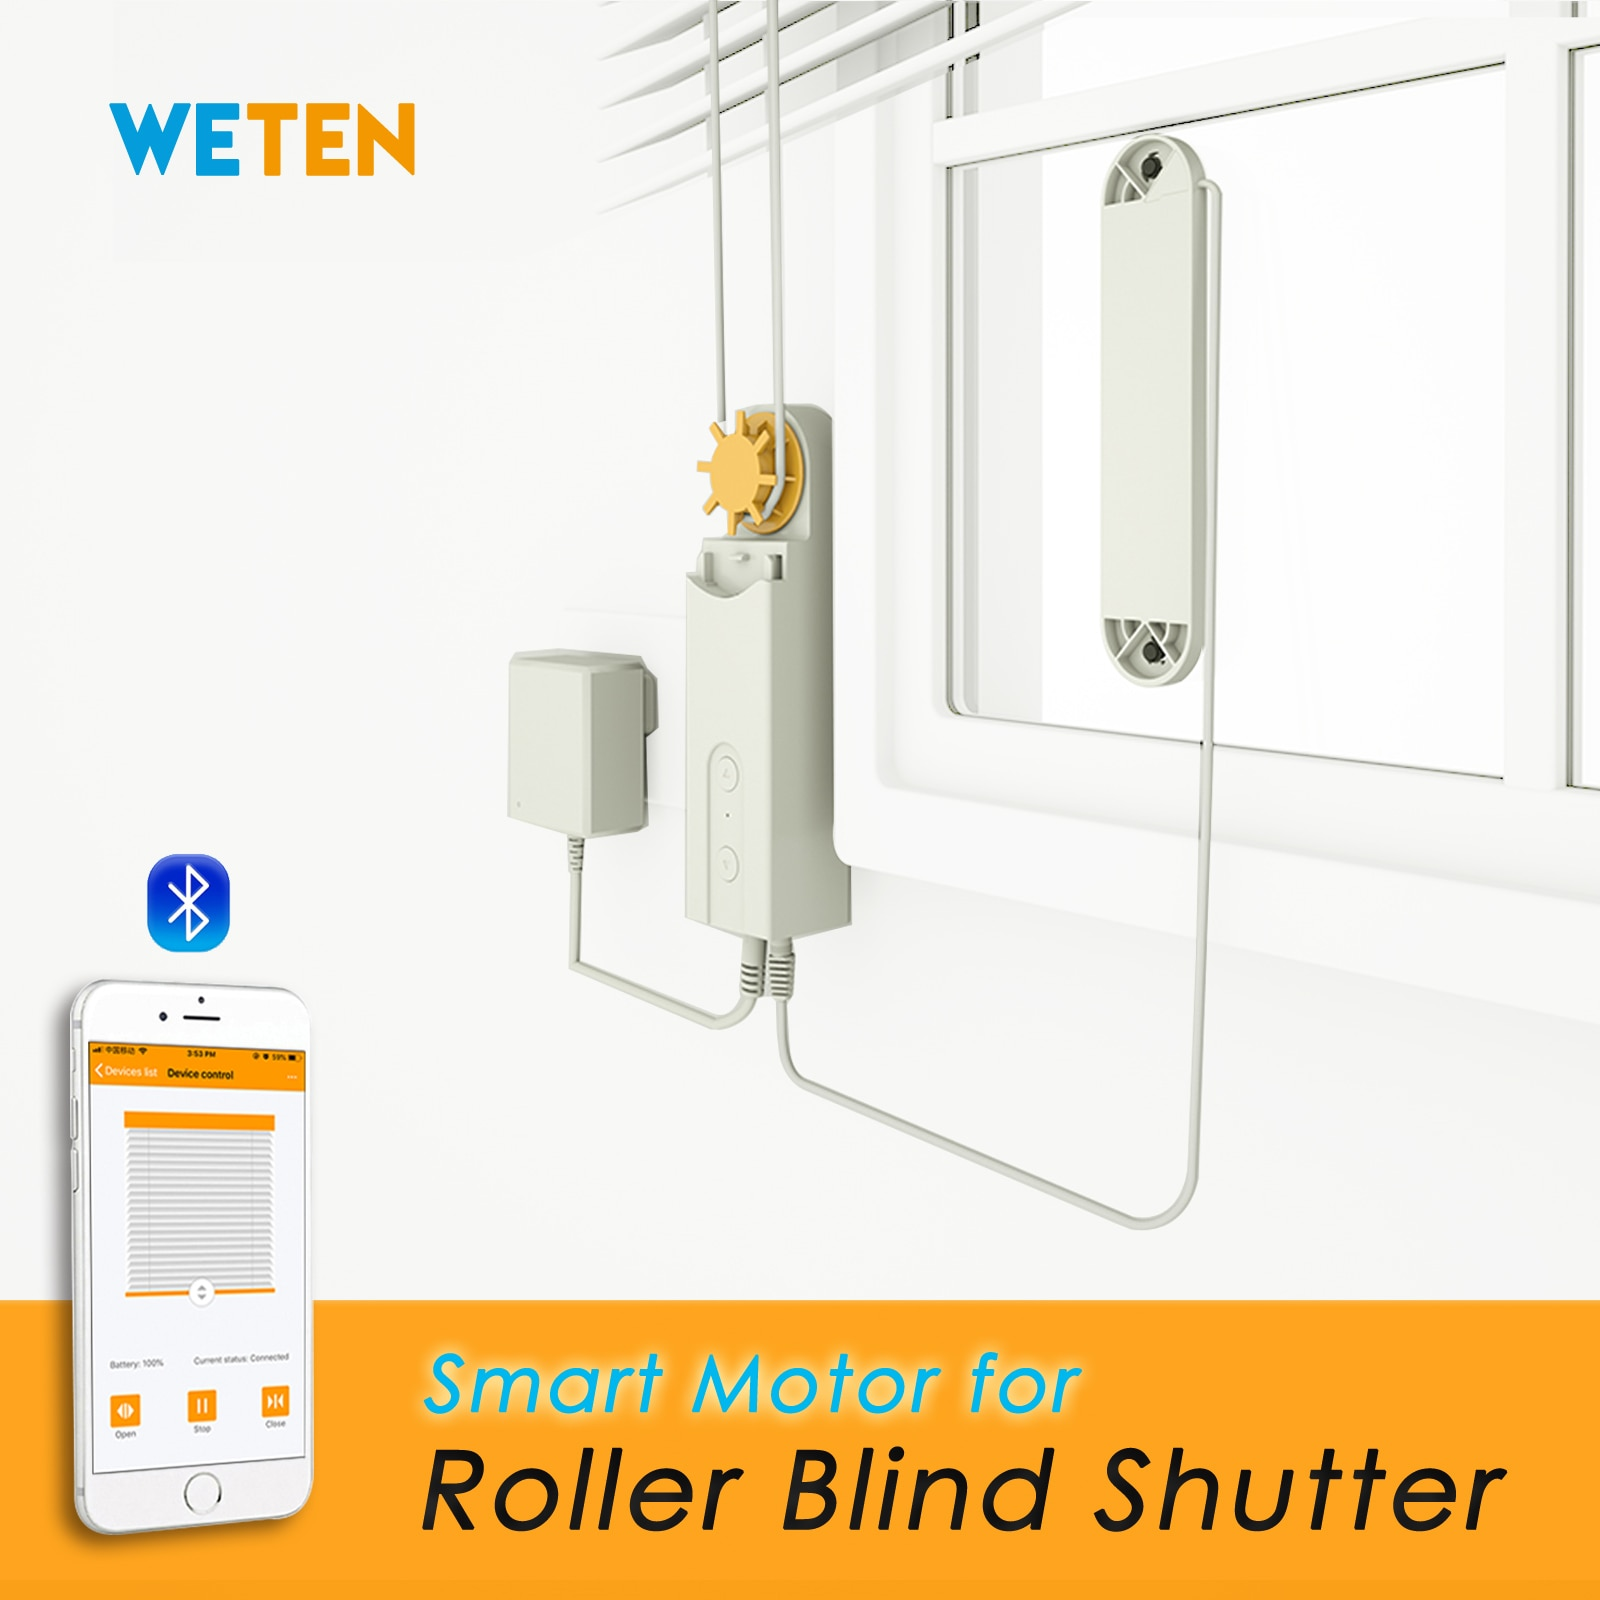 Smart Roller Blinds Shades Shutters Motor for Window Blinds Curtains, Powered By Solar Panel and Charger, Bluetooth APP Control